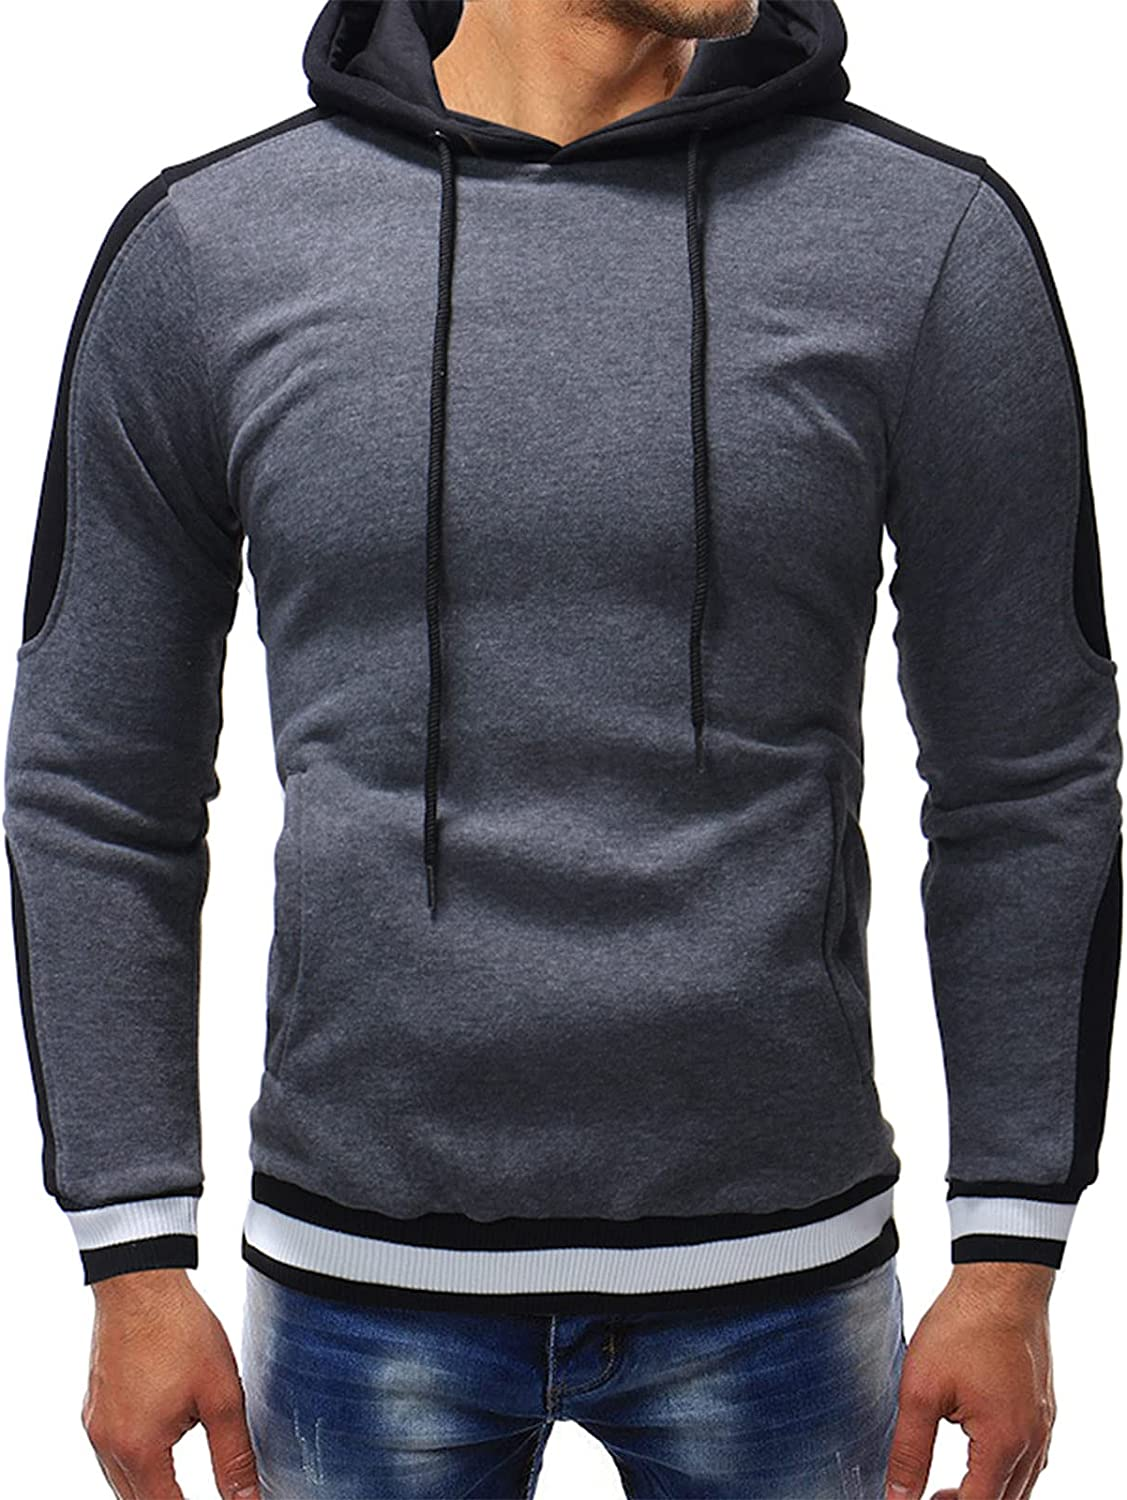 XXBR Fall Hoodies for Mens, Threaded cuffs Drawstring Hooded Sweatshirts Color Block Patchwork Workout Casual Pullover